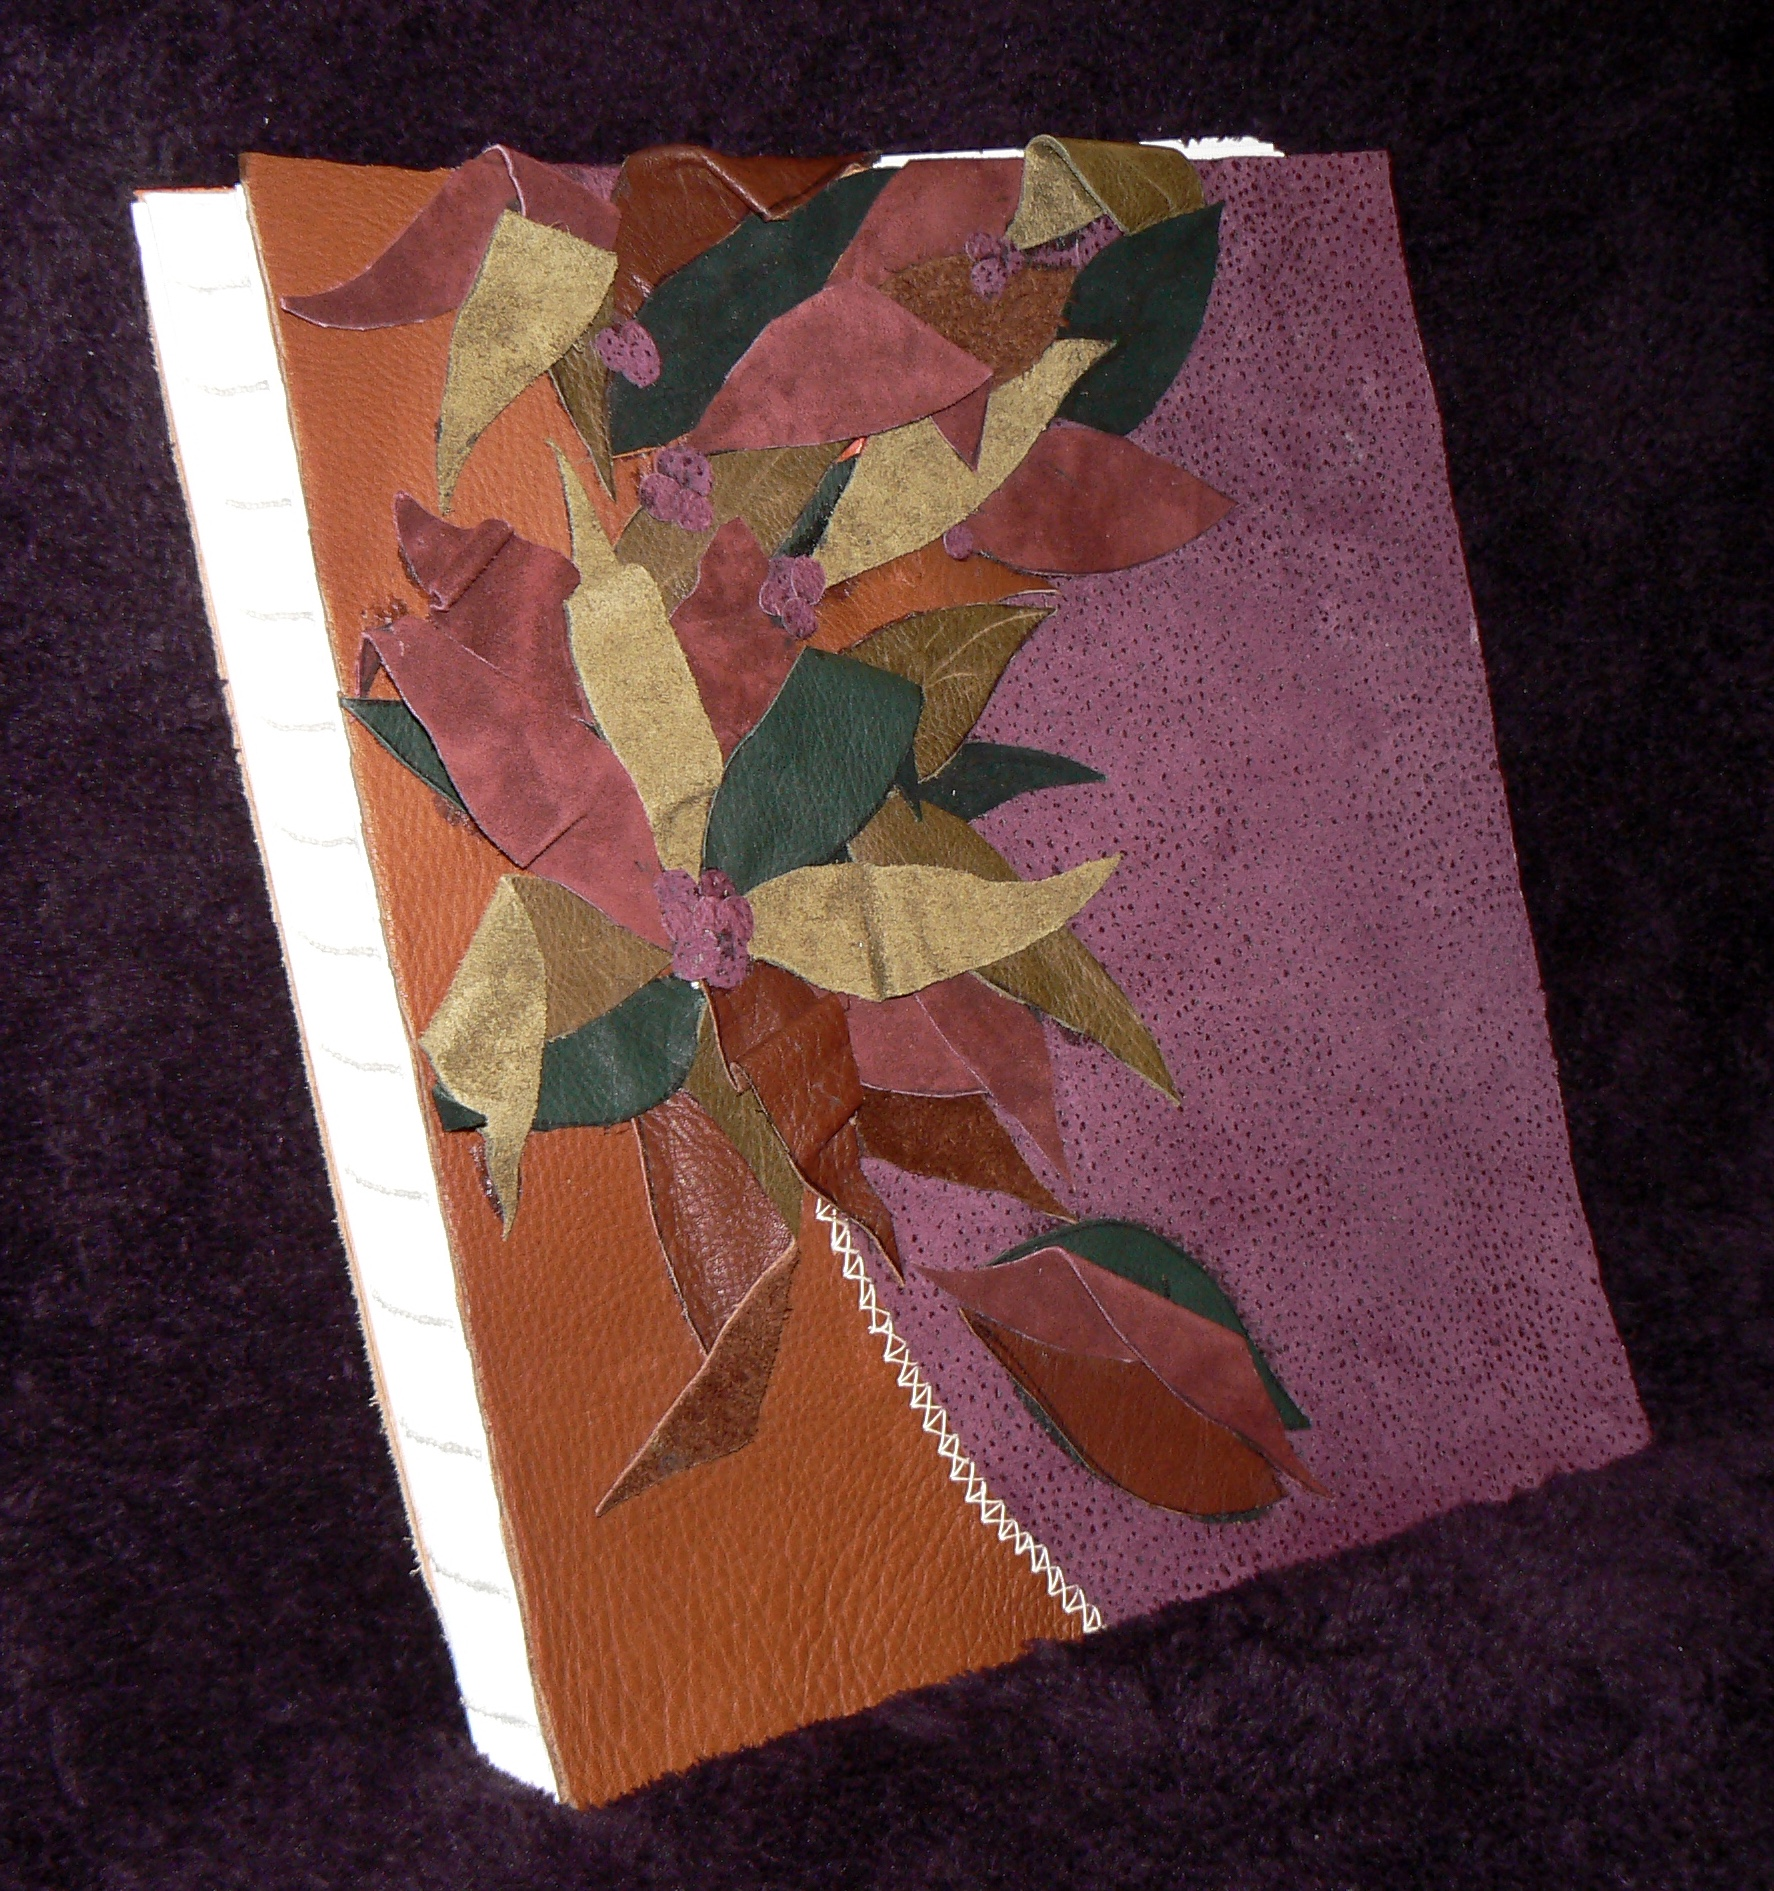 Leather cover and hand-stitched volume, created by Joanne de Biasi, the mastermind behind this project.